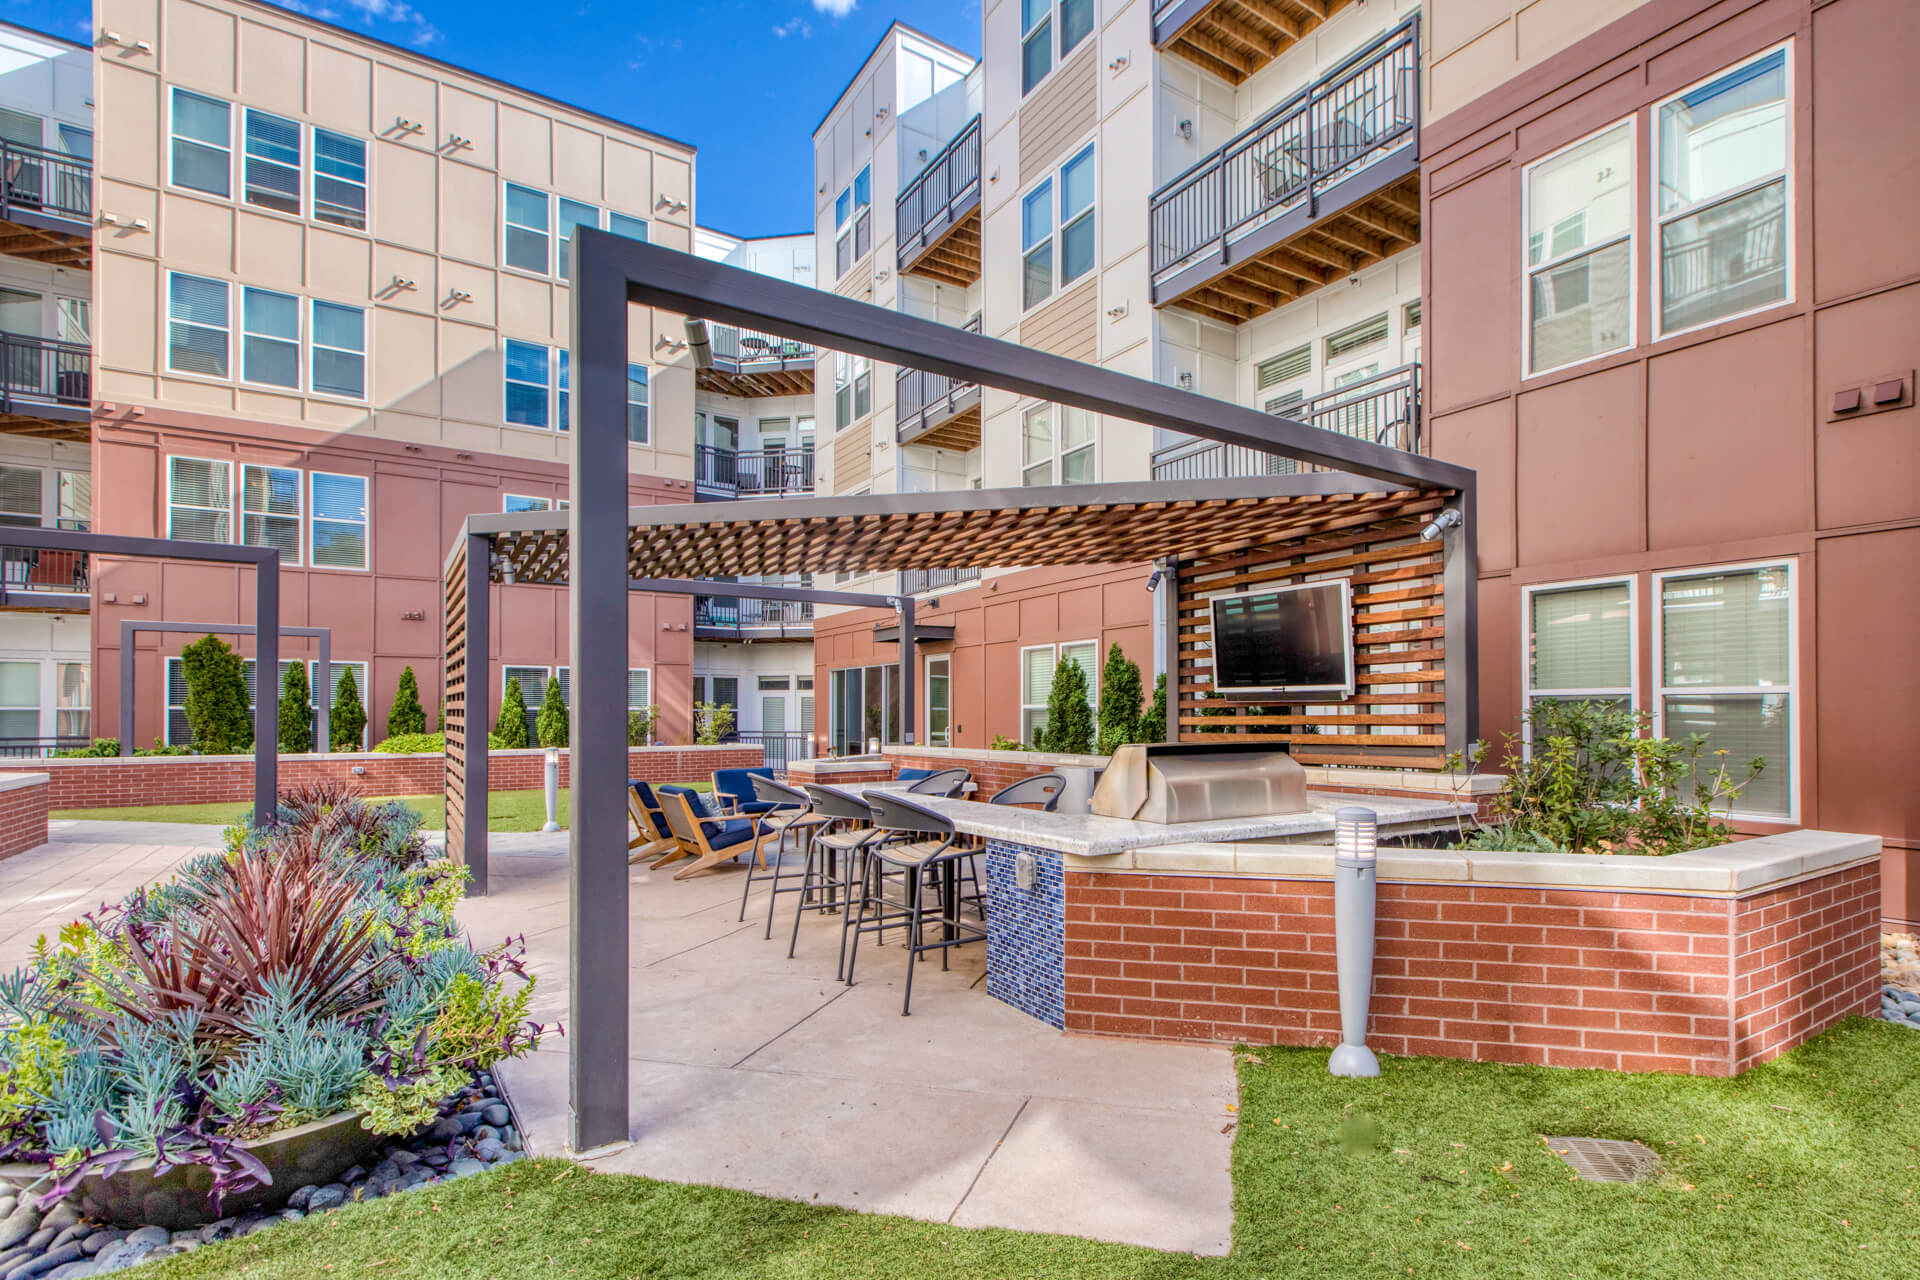 Outdoor Grill With Seating Area at Centric LoHi by Windsor, Denver